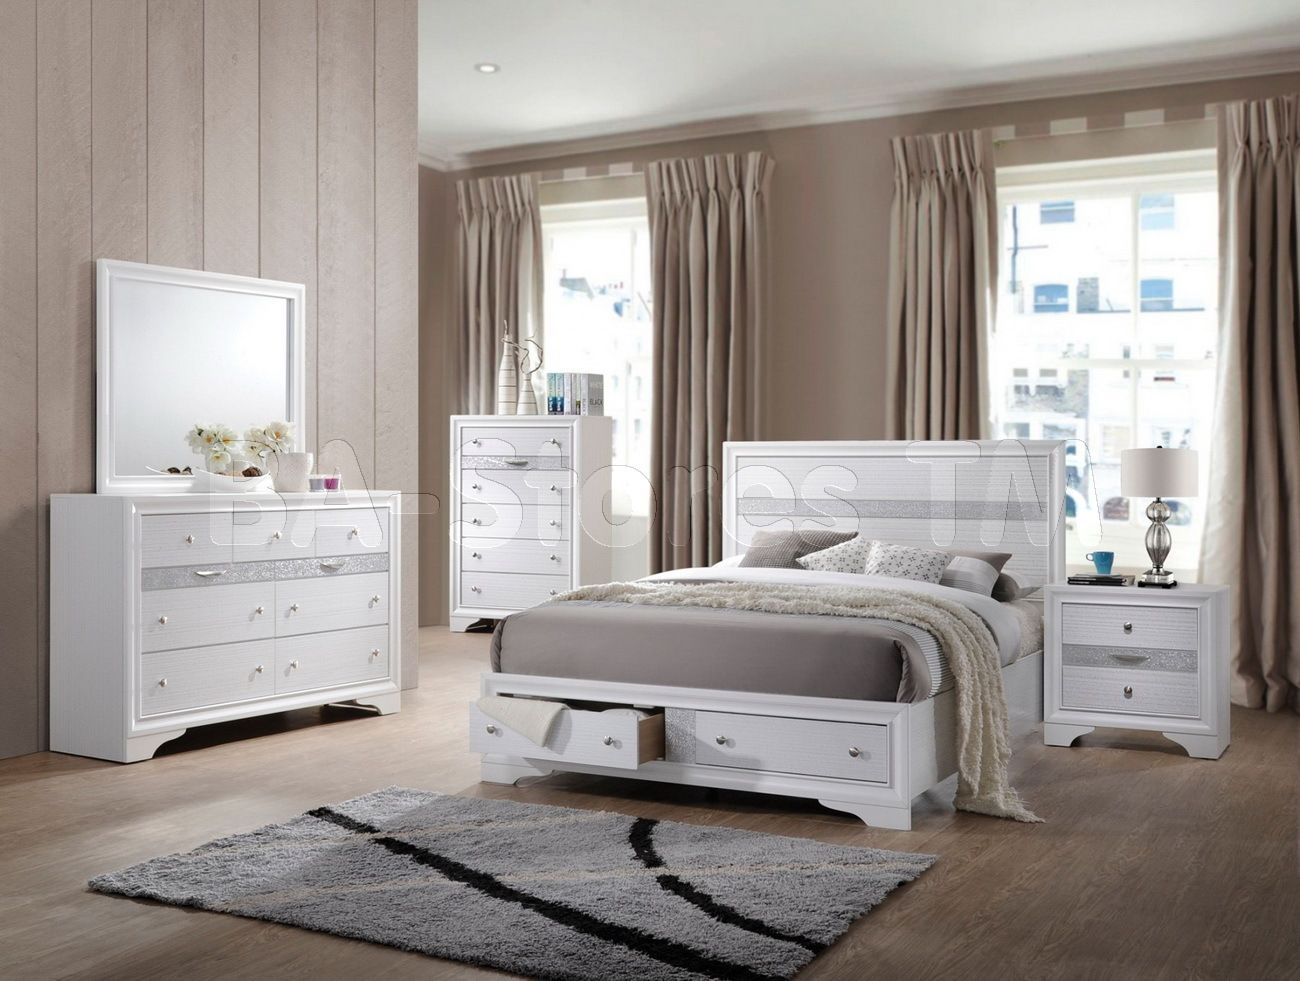 acme furniture bedroom sets. Naima 5 PC Bedroom Set in White by Acme Furniture  Sets